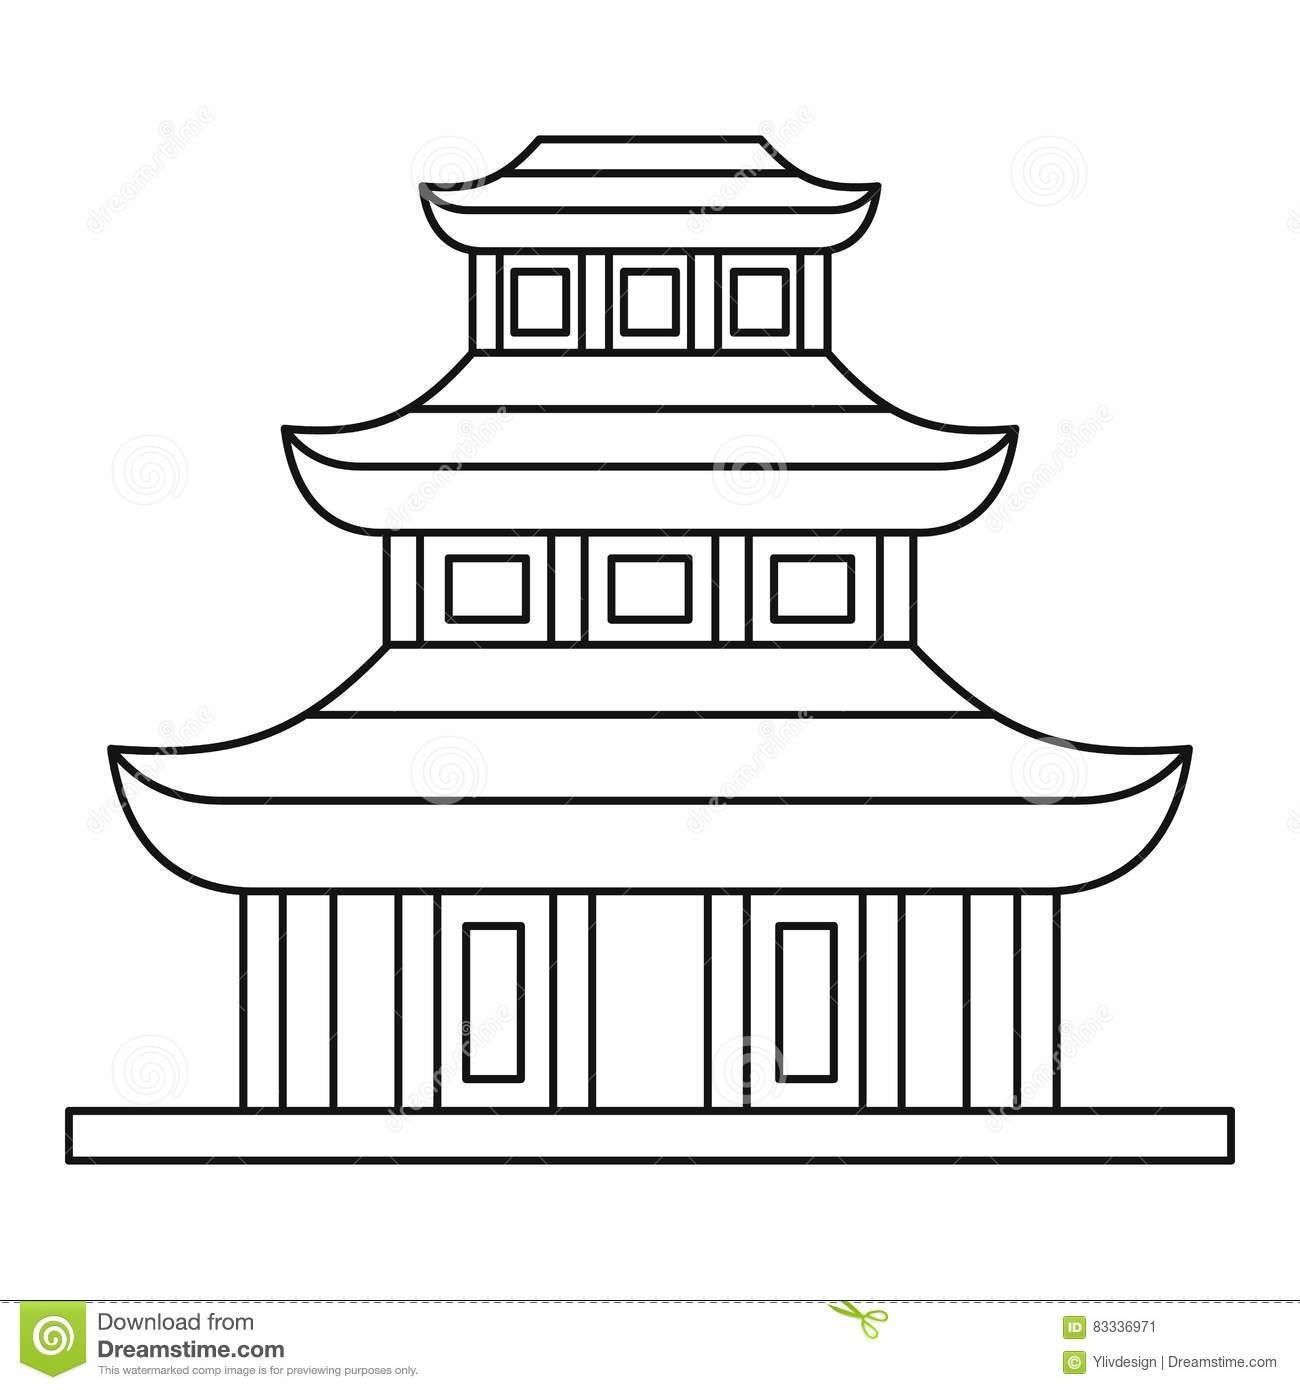 Chinese temple clipart black and white 6 » Clipart Portal.